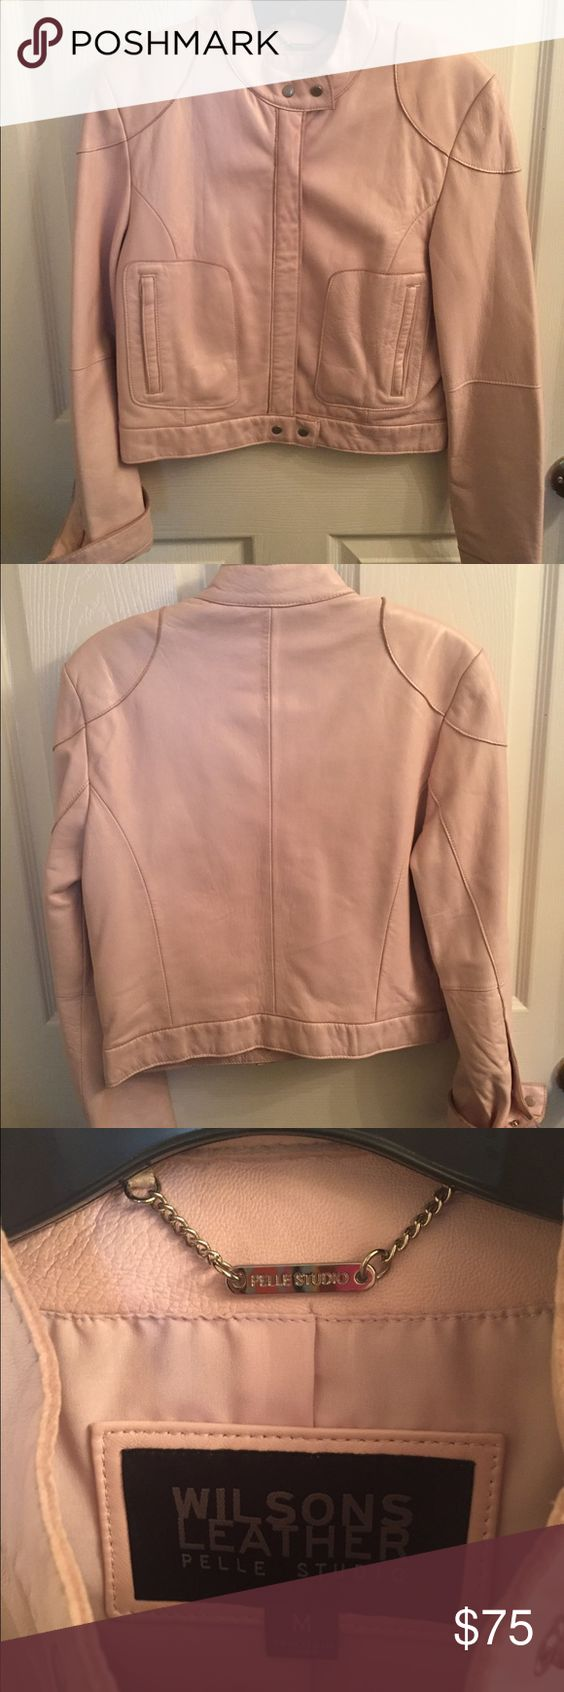 """Pearl Pink Leather Motor Jacket Loved... loved this jacket! It has only been worn once over the years. It is a limited edition """"Pelle Sudio"""" by the original Wilson's Leather. It can be worn with a skirt, jeans, leggings, or an overcoat for a Tunic. Wilsons Leather Jackets & Coats"""